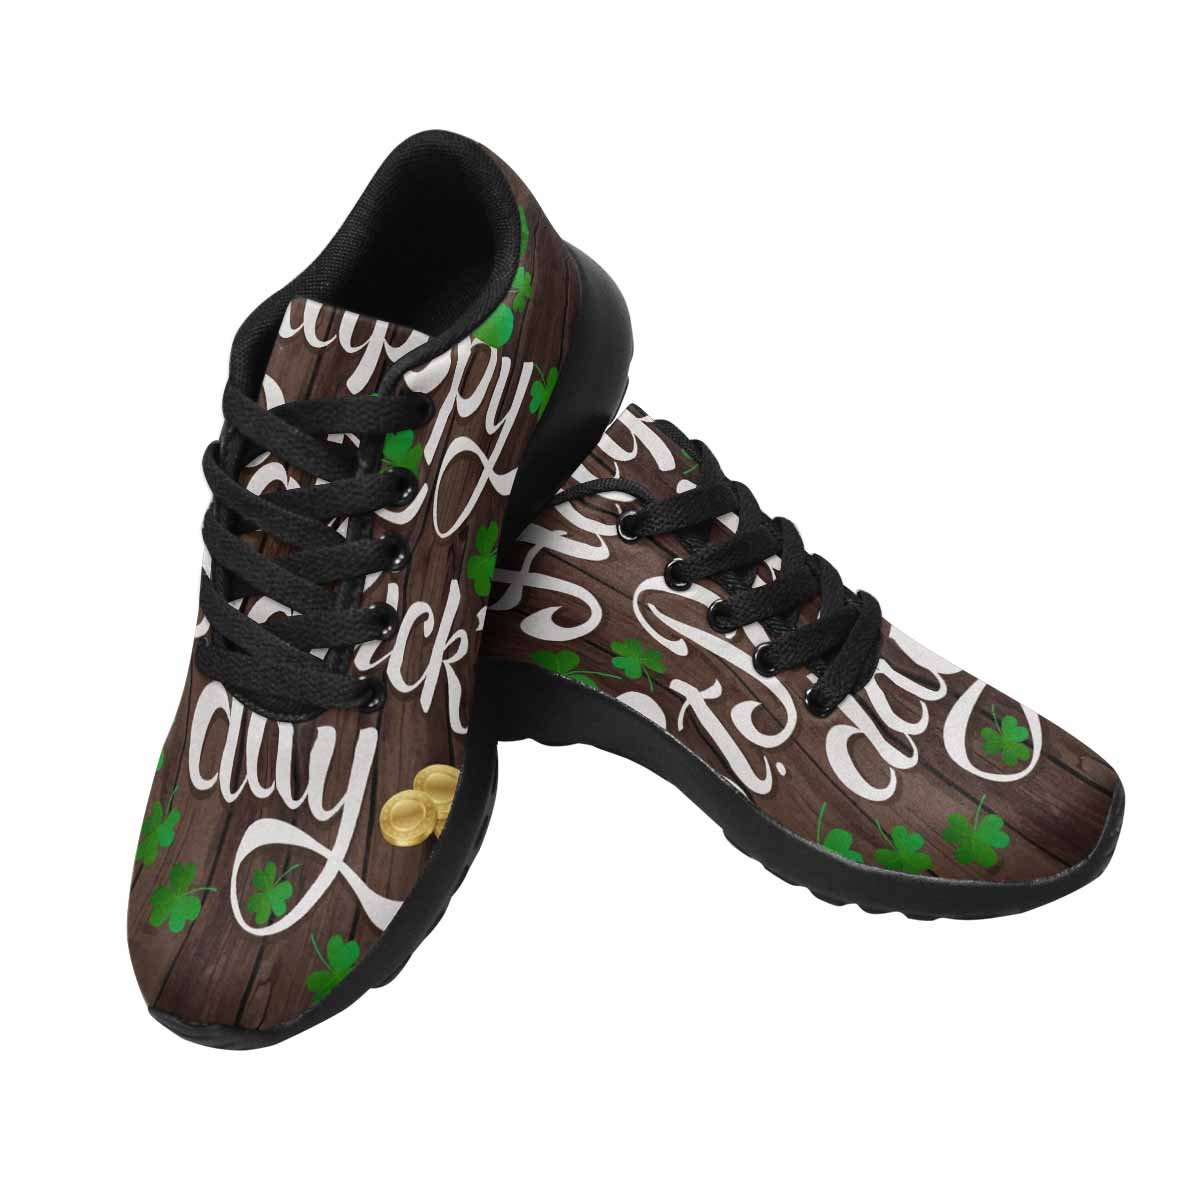 InterestPrint Women's Go Easy Walking Comfort Sports Athletic Shoes Happy St, Patrick's Day US 7